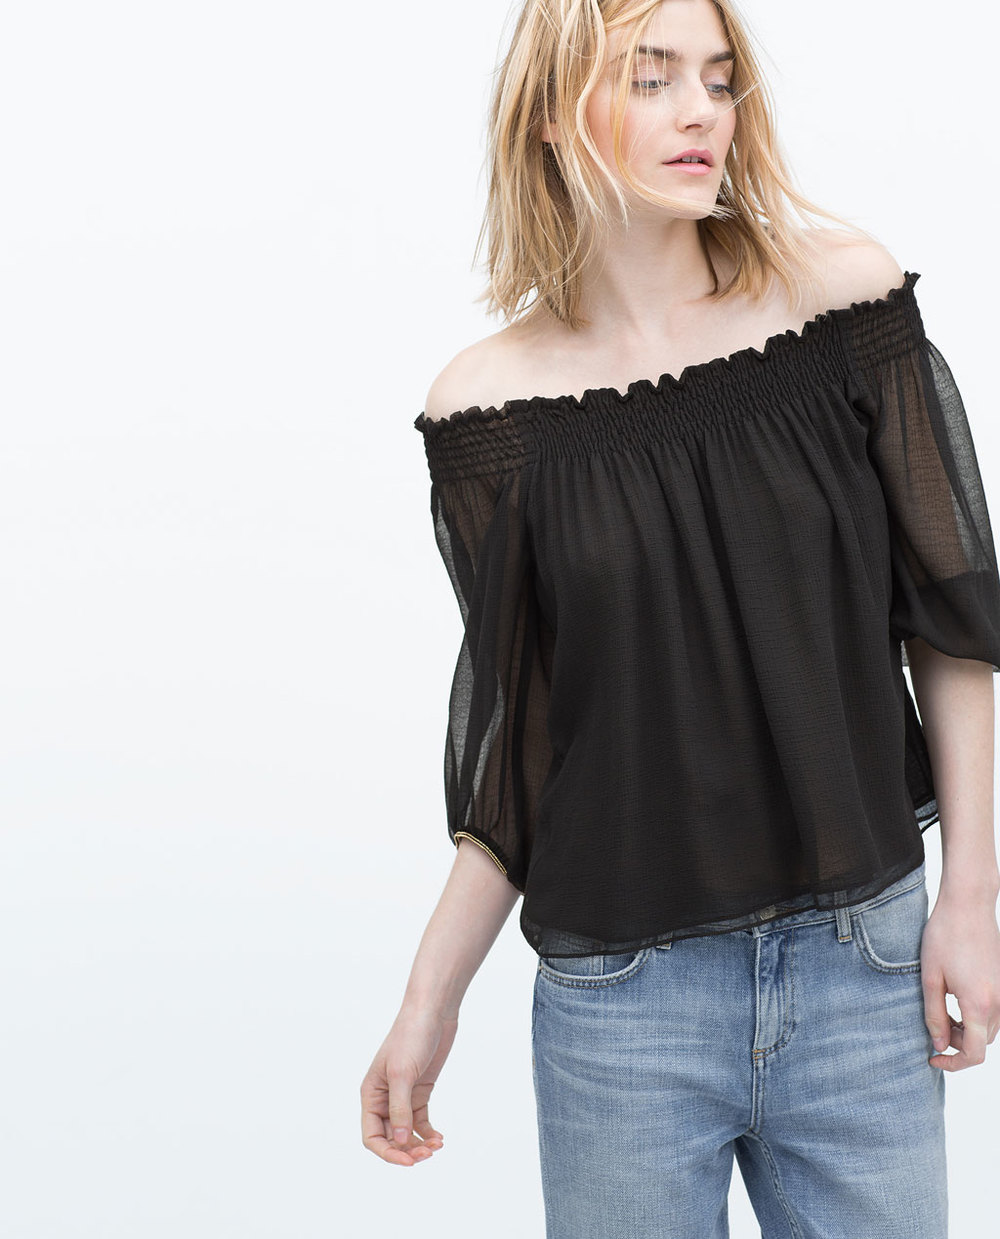 zara off shoulder top.jpg